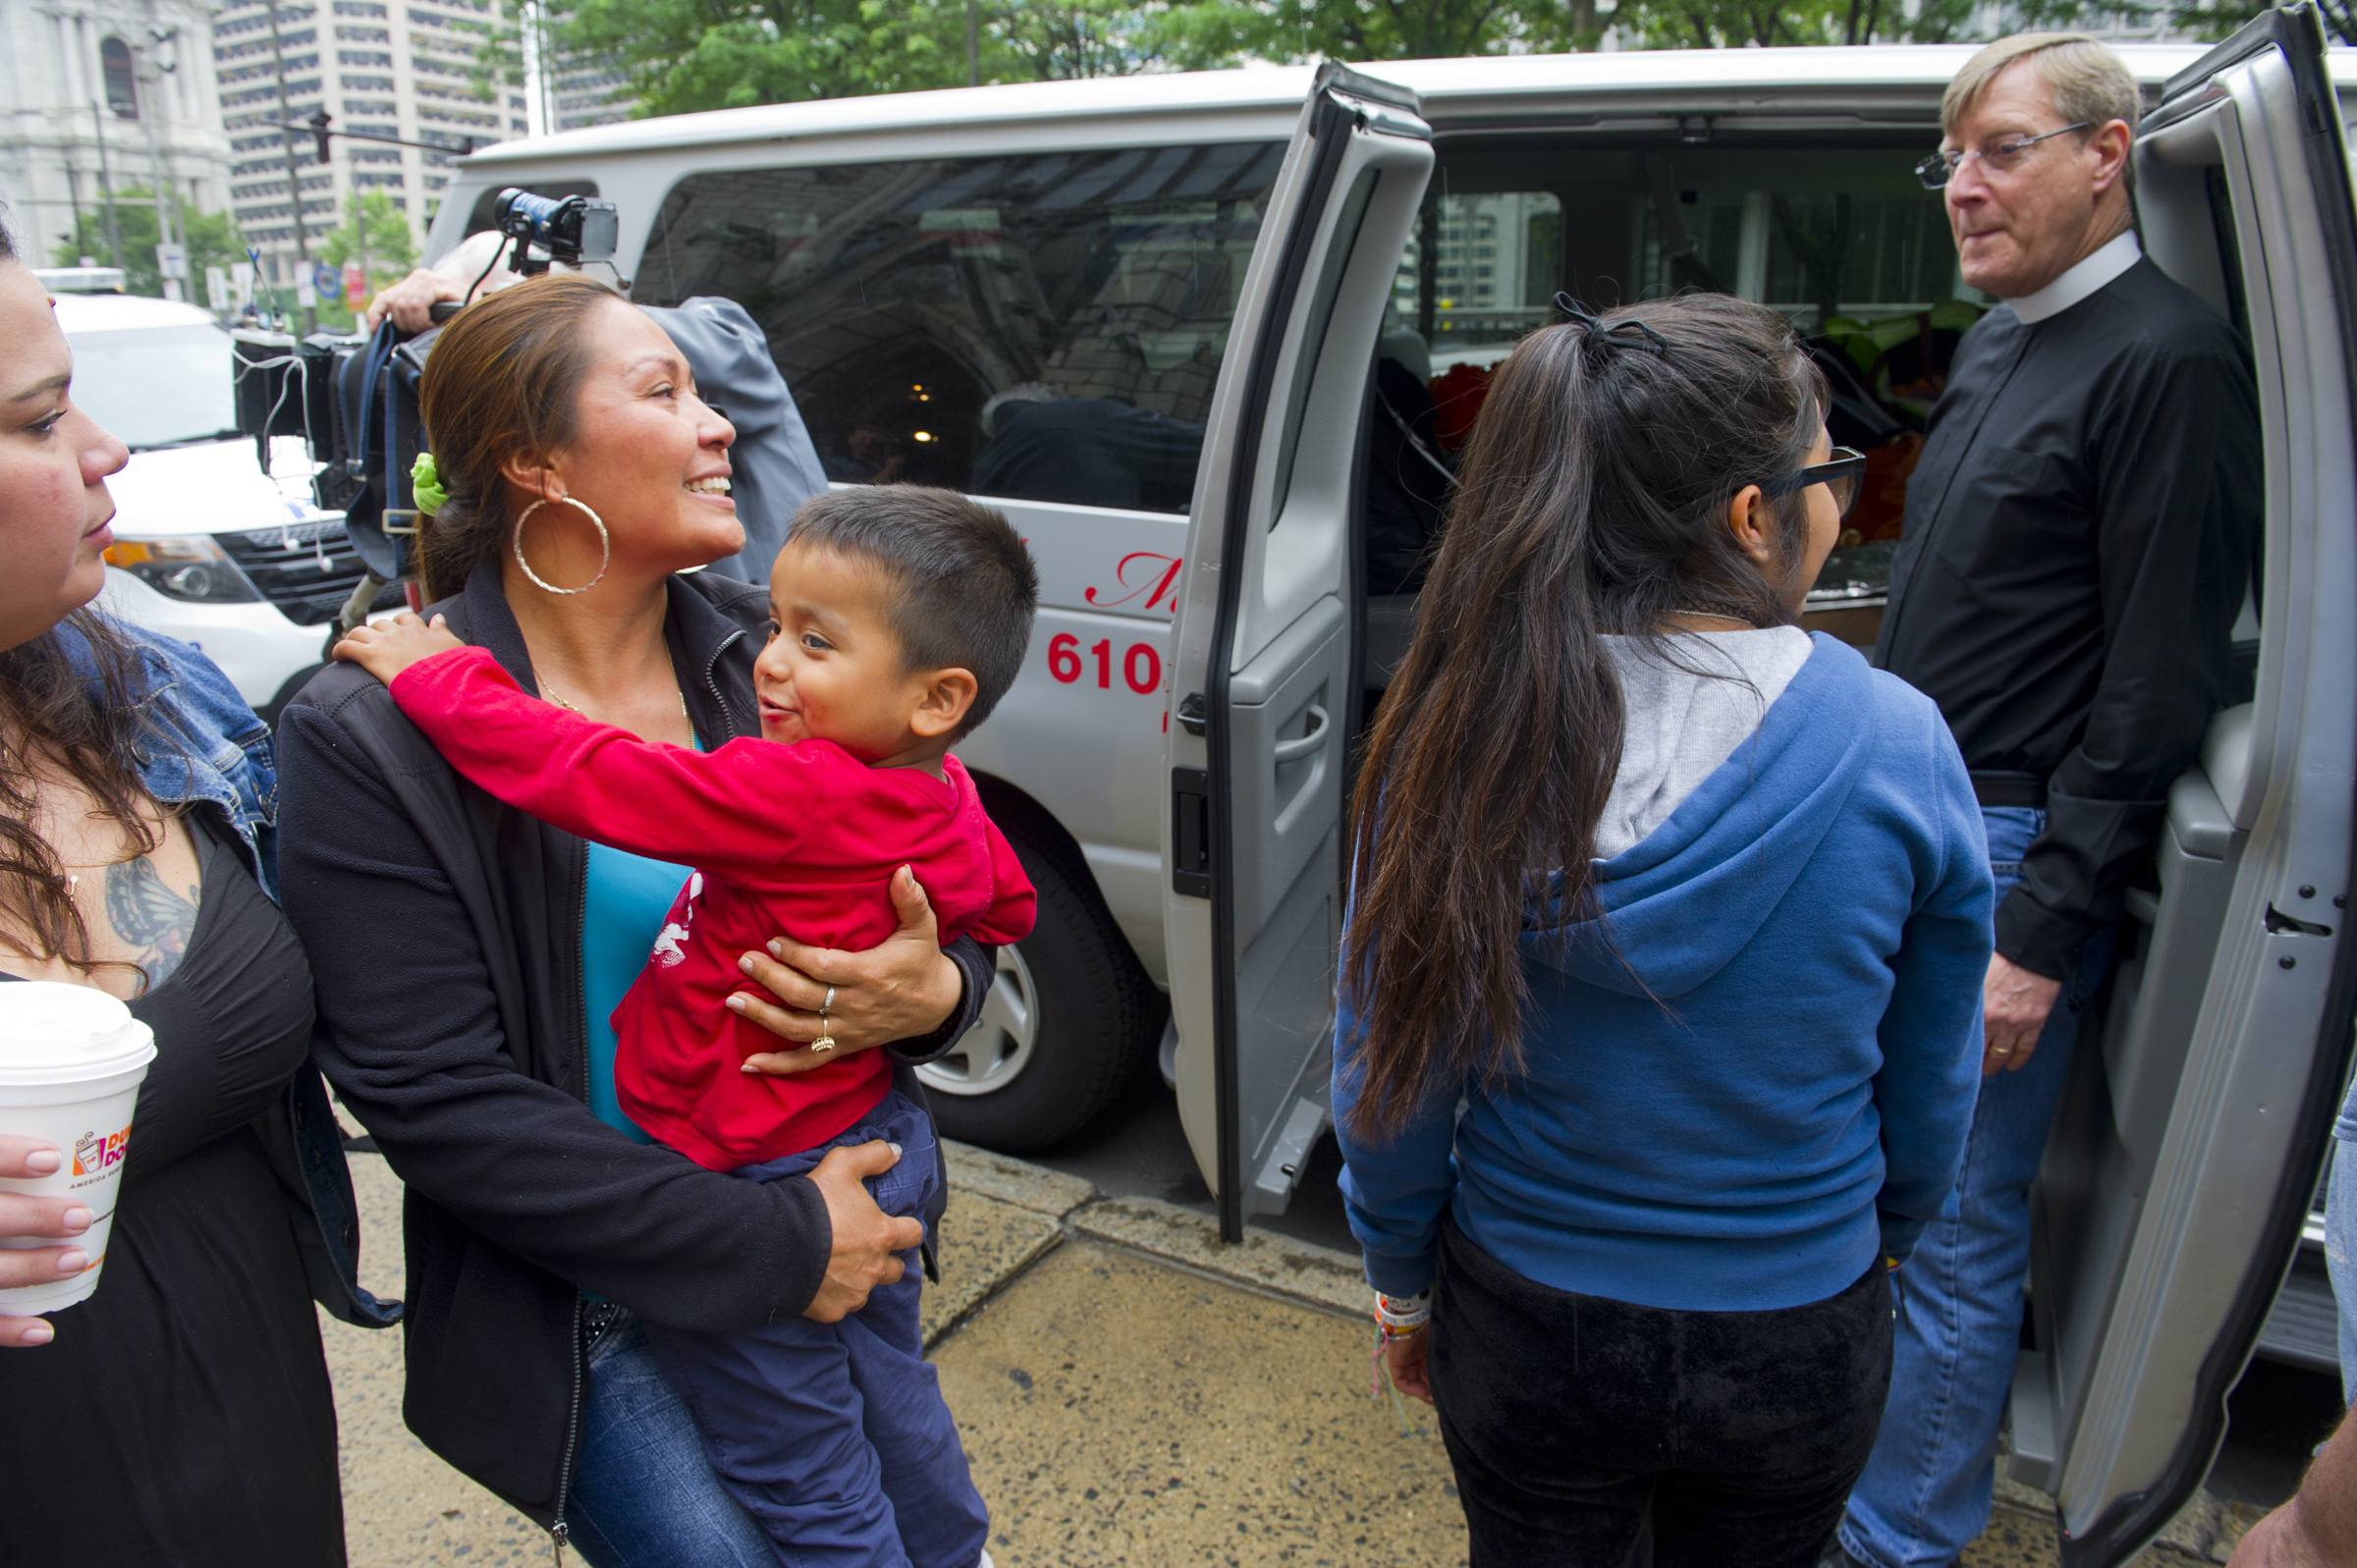 June 5, 2017 -- Alma Romero, holding her son Javier Jr., 5 and along with her daughter Adamaris, 13, and the Arch Street United Methodist Church pastor Rev. Robin Hynicka, board a van in Philadelphia Monday morning bound for New England as part of a convoy to persuade U.S. Citizenship and Immigration Services to grant her husband Javier Flores Garcia a visa for legal residency. The 40-year-old Mexican man has taken refuge at the church. (Avi Steinhardt/ For the Philadelphia Inquirer)